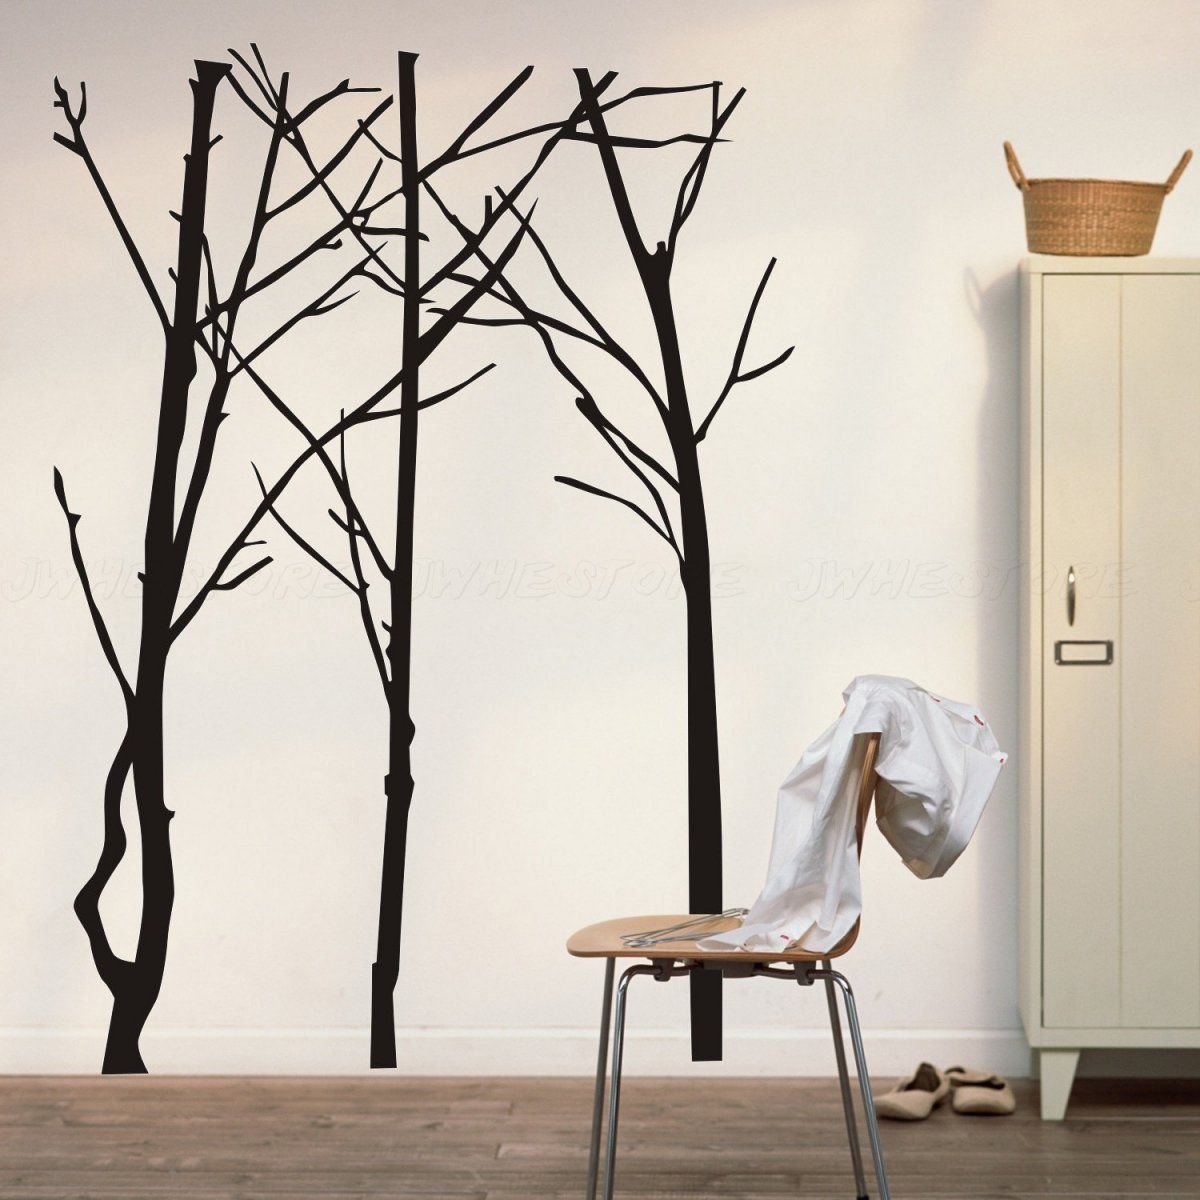 Simple minimalist black birch tree silhouette wall decals wall simple minimalist black birch tree silhouette wall decals wall stickers for bedroom living room decoration amipublicfo Image collections